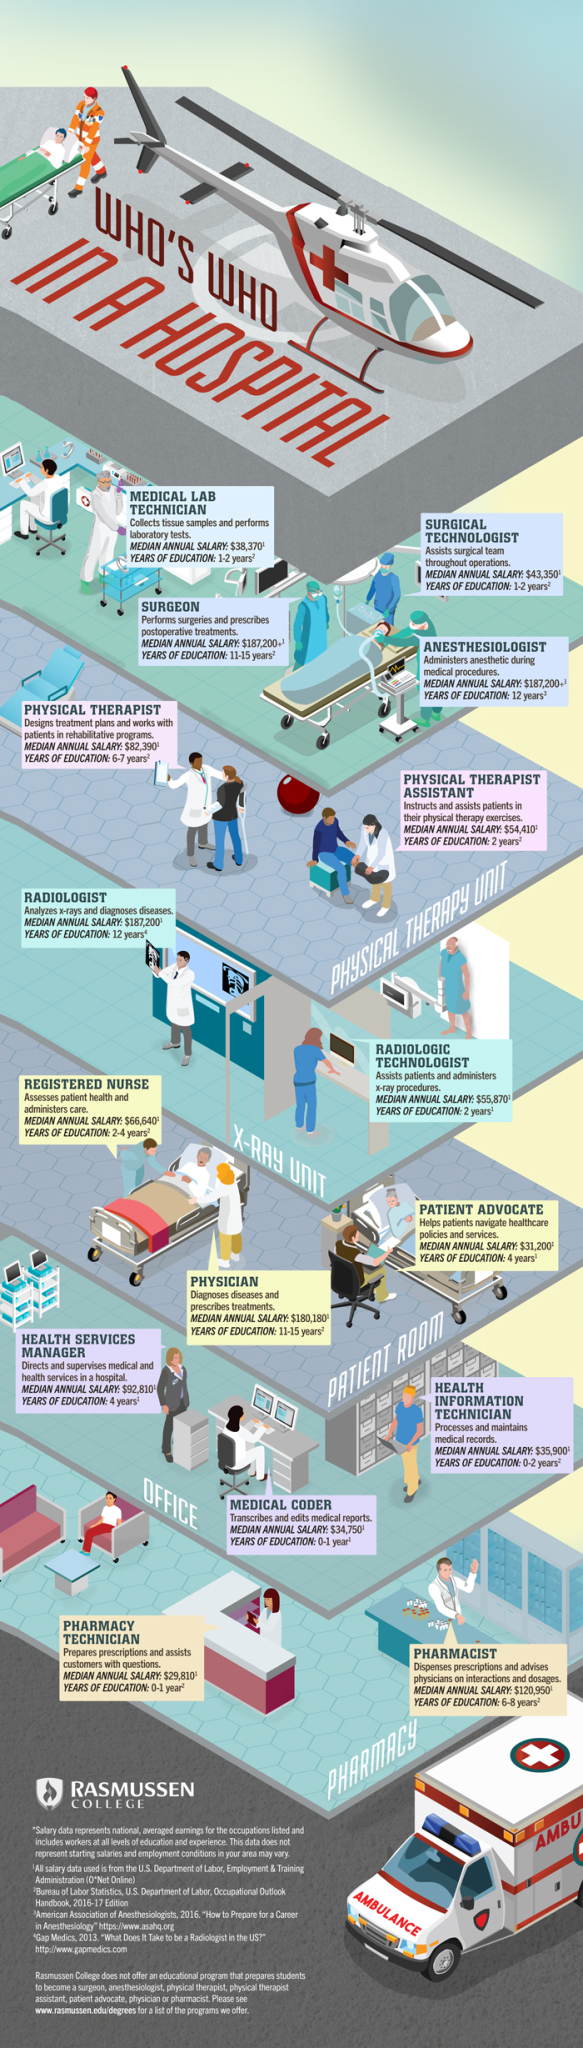 who's who in hospital medical jobs infographic, described in detail below.